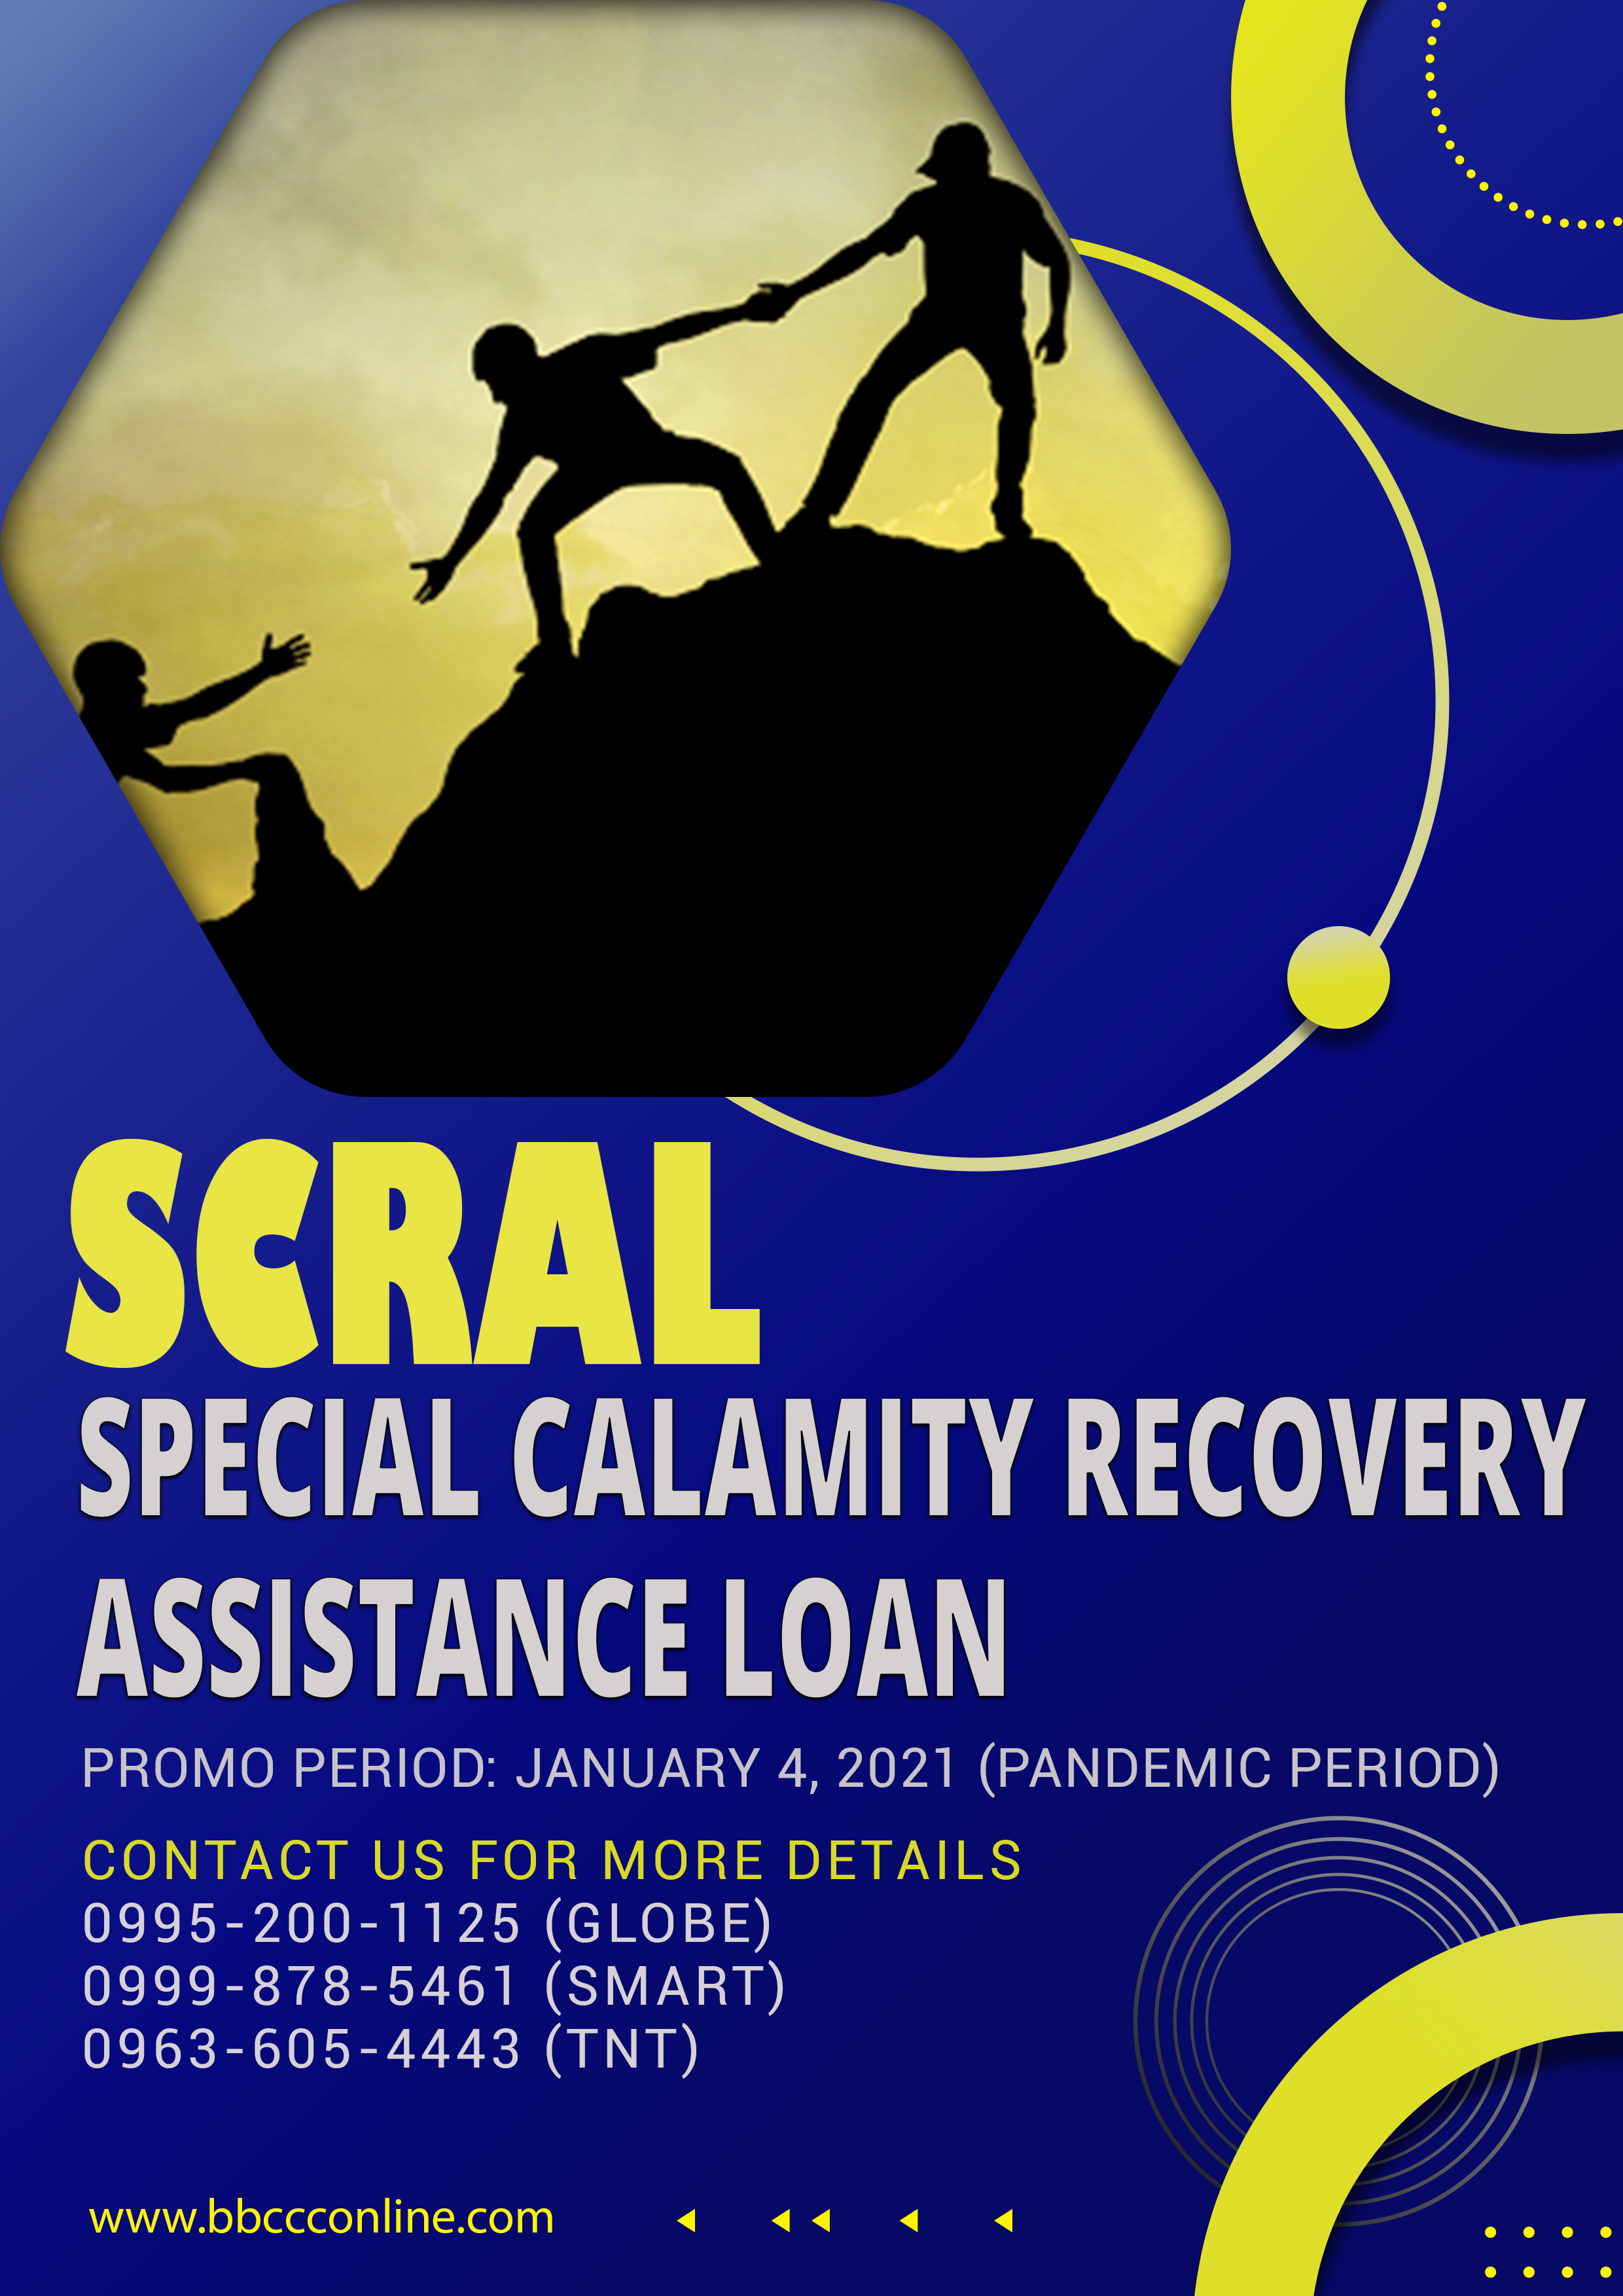 Special Calamity Recovery Assistance Loan